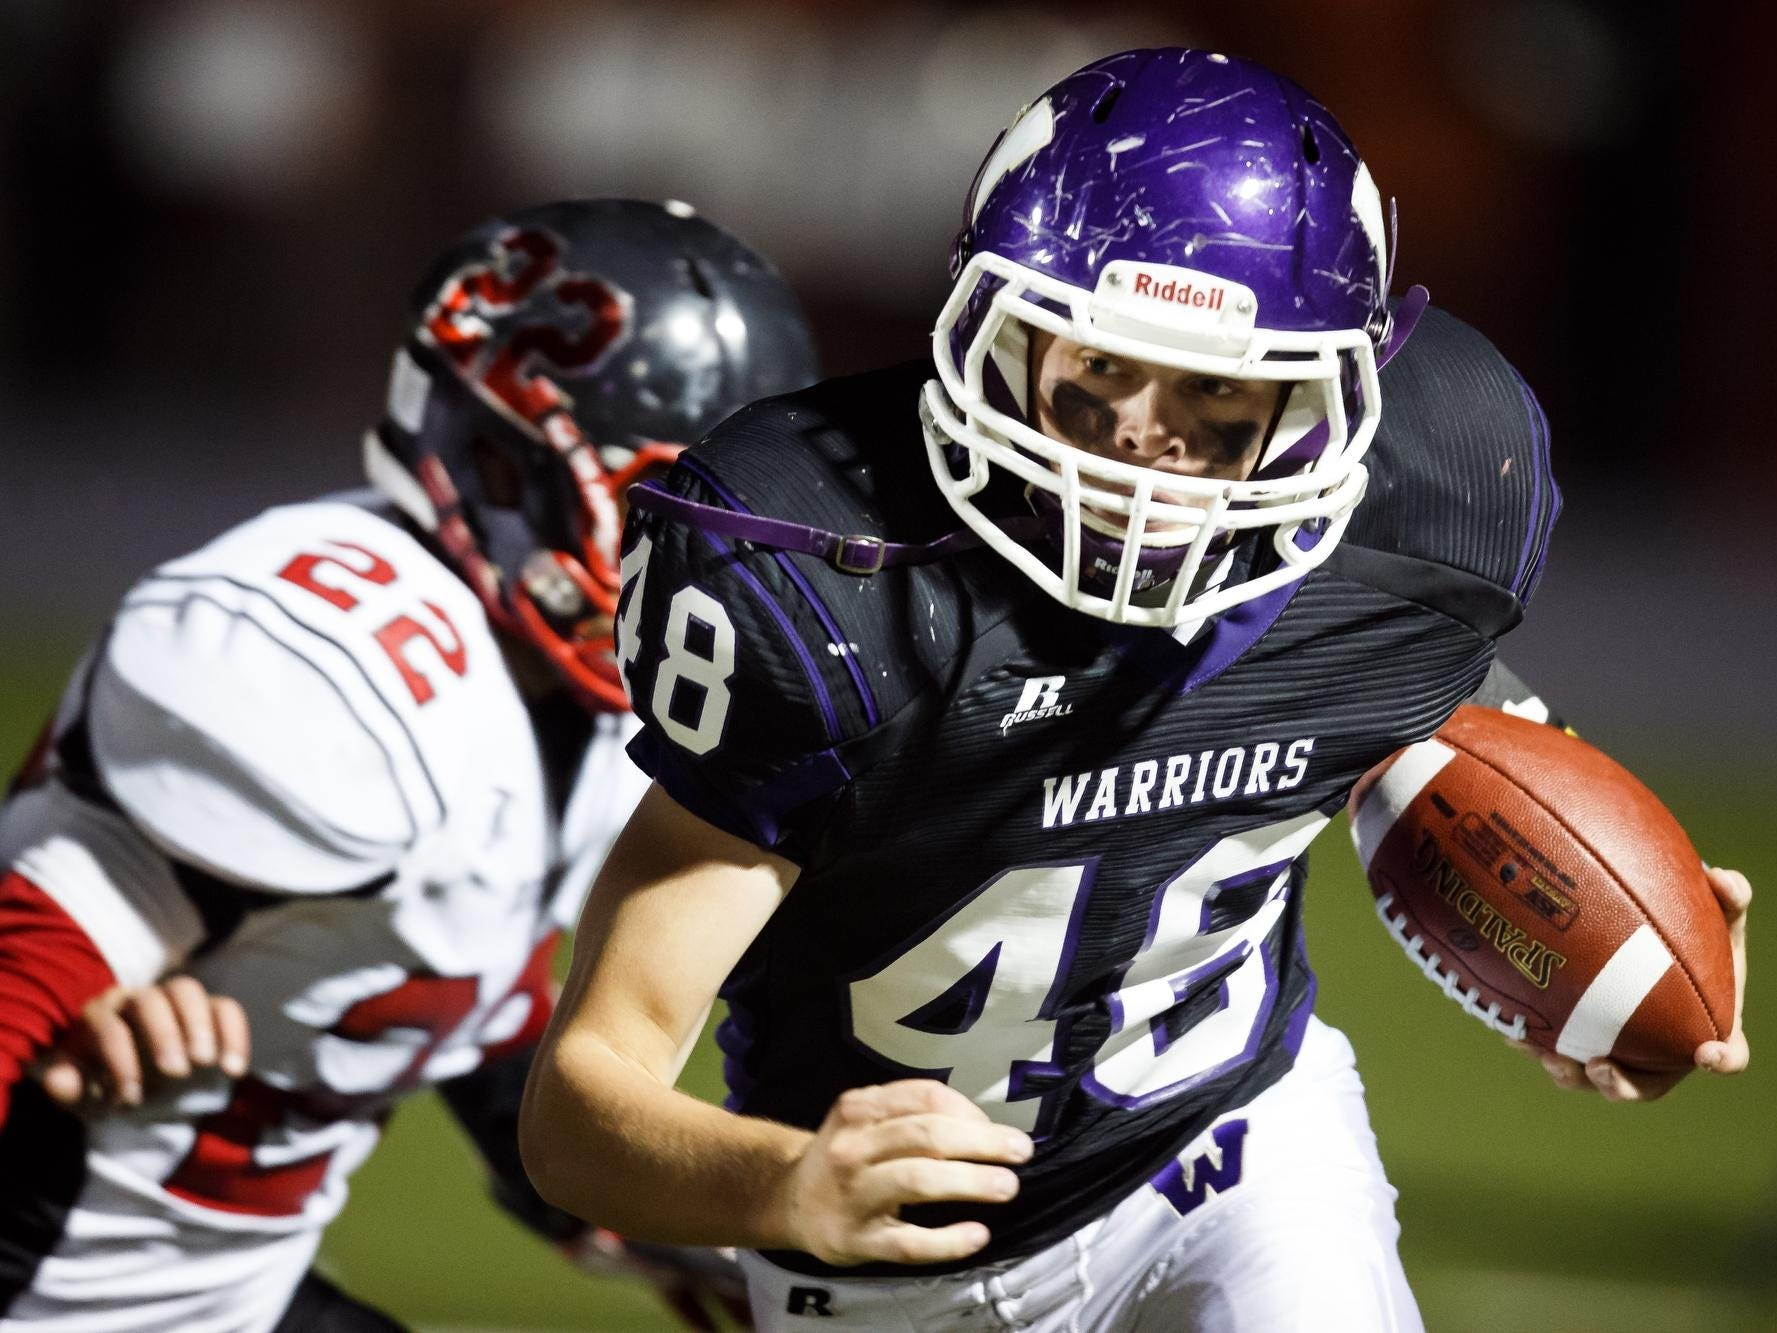 Waukee's Jordan Yaukovitz tries to get out of the end zone after a fumbled snap against Fort Dodge in Waukee on Friday.